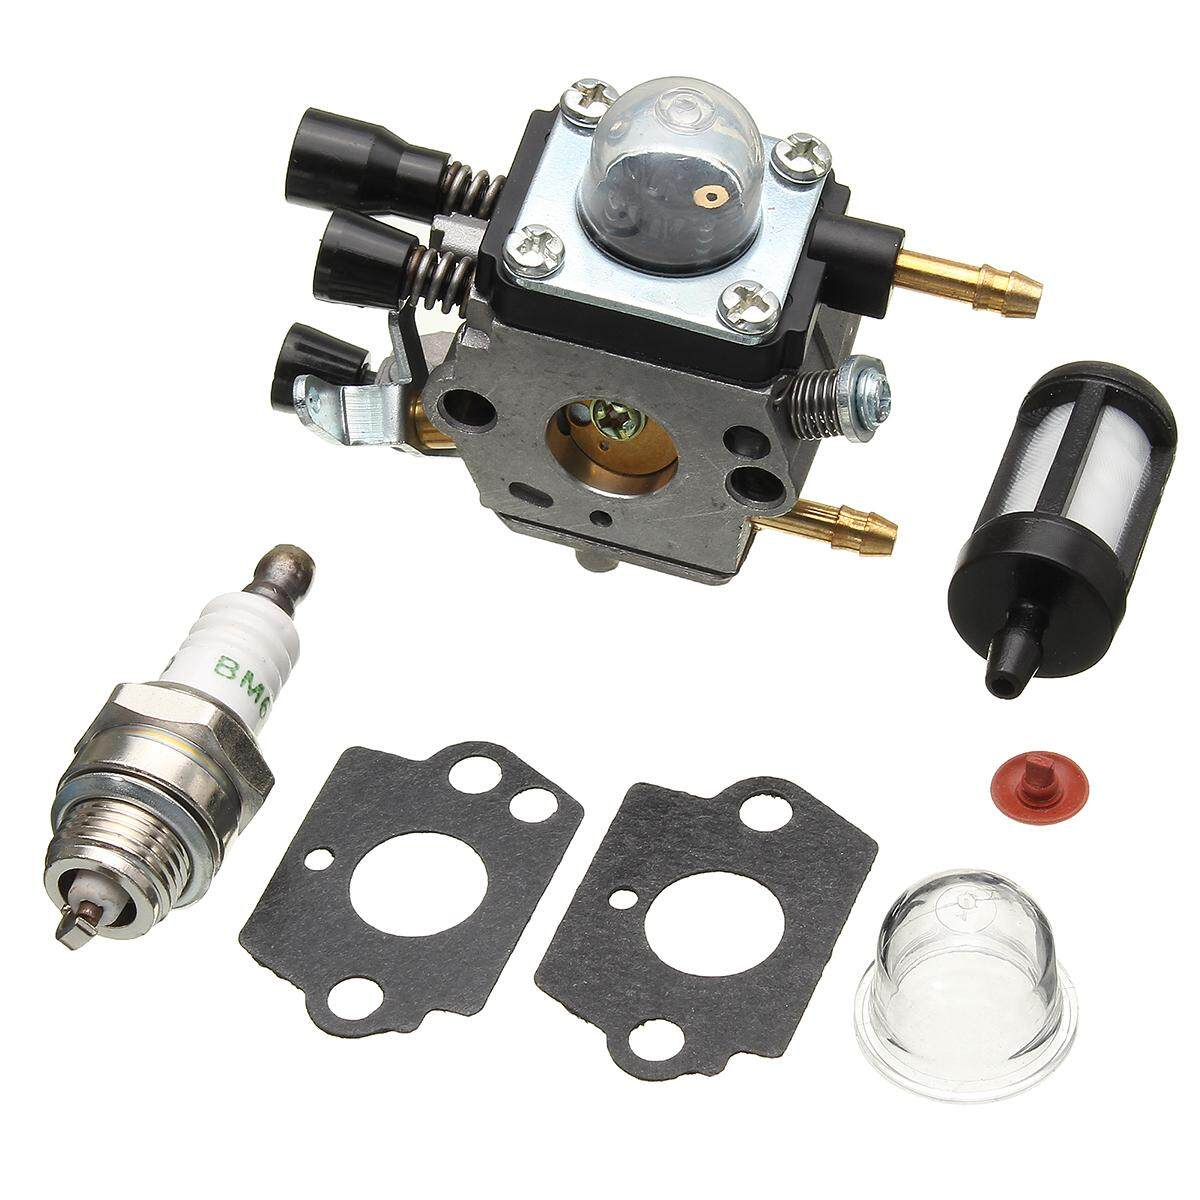 Carburetor+Filter Kit For BG45 BG46 BG55 BG65 BG85 SH55 SH85 Leaf Carb CaBlower - intl